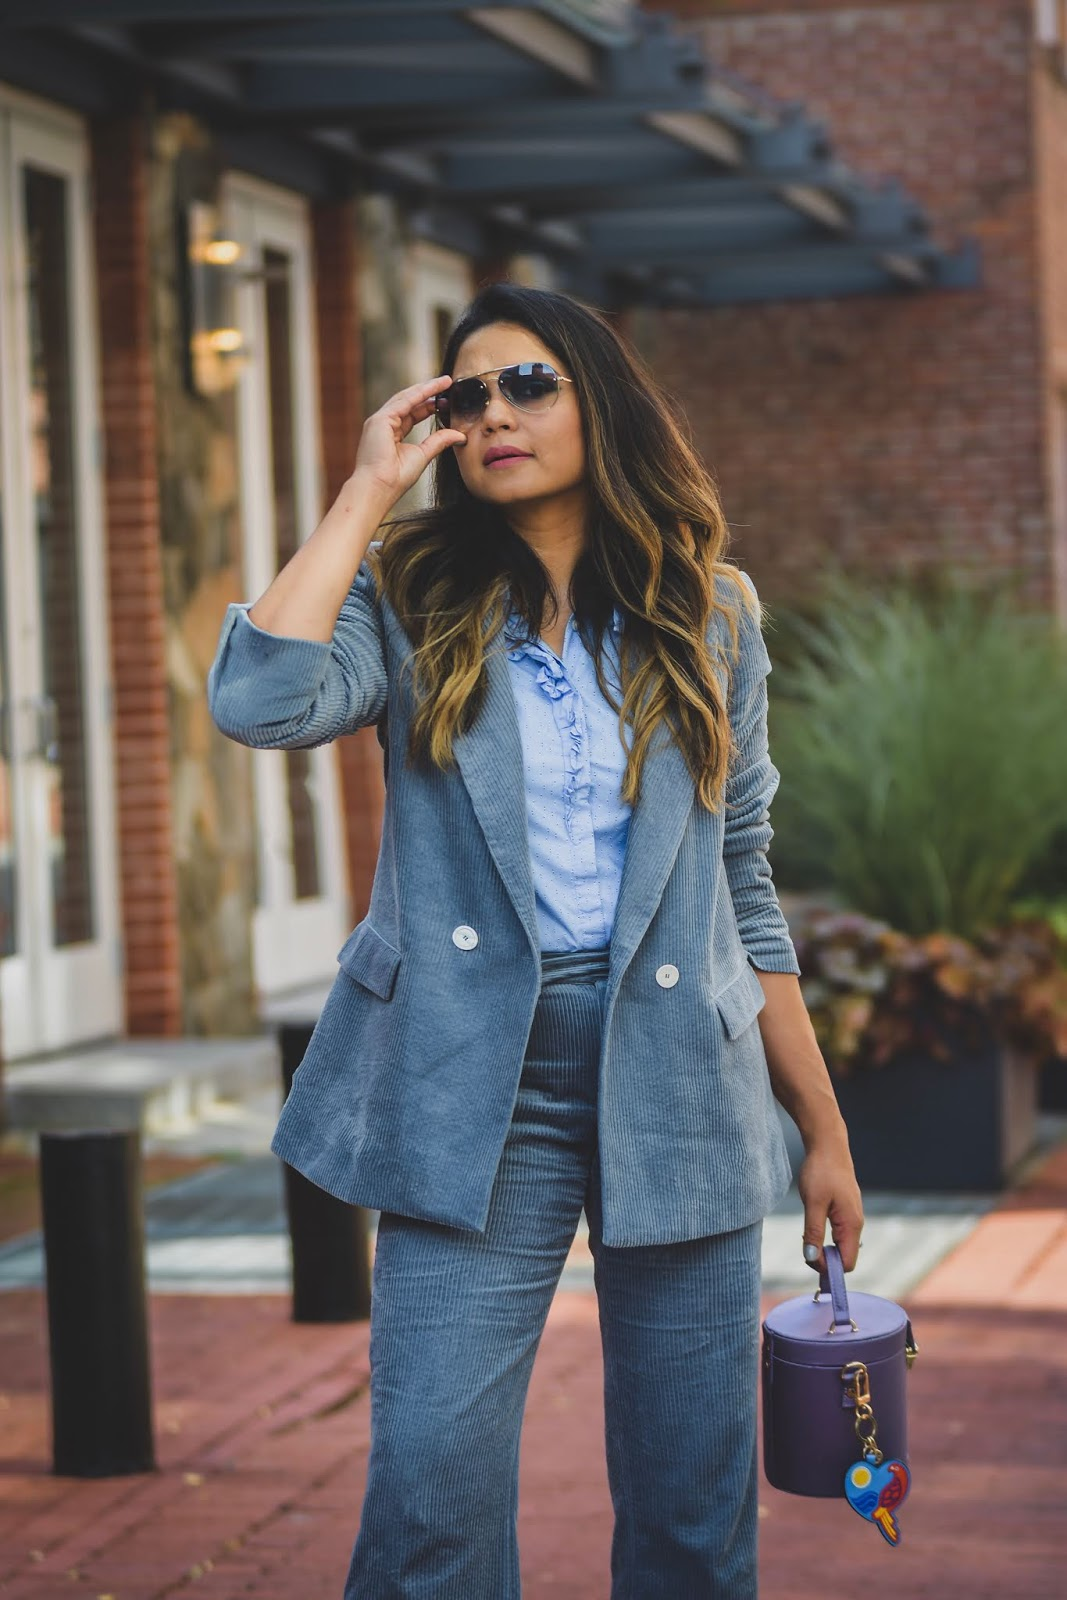 how to wear a corduroy pant suit, blue pant suit, zara pant suit, strappy sandals, purple bucket bag, street style, fall fashion, office style, office look, fashion, myriad musings